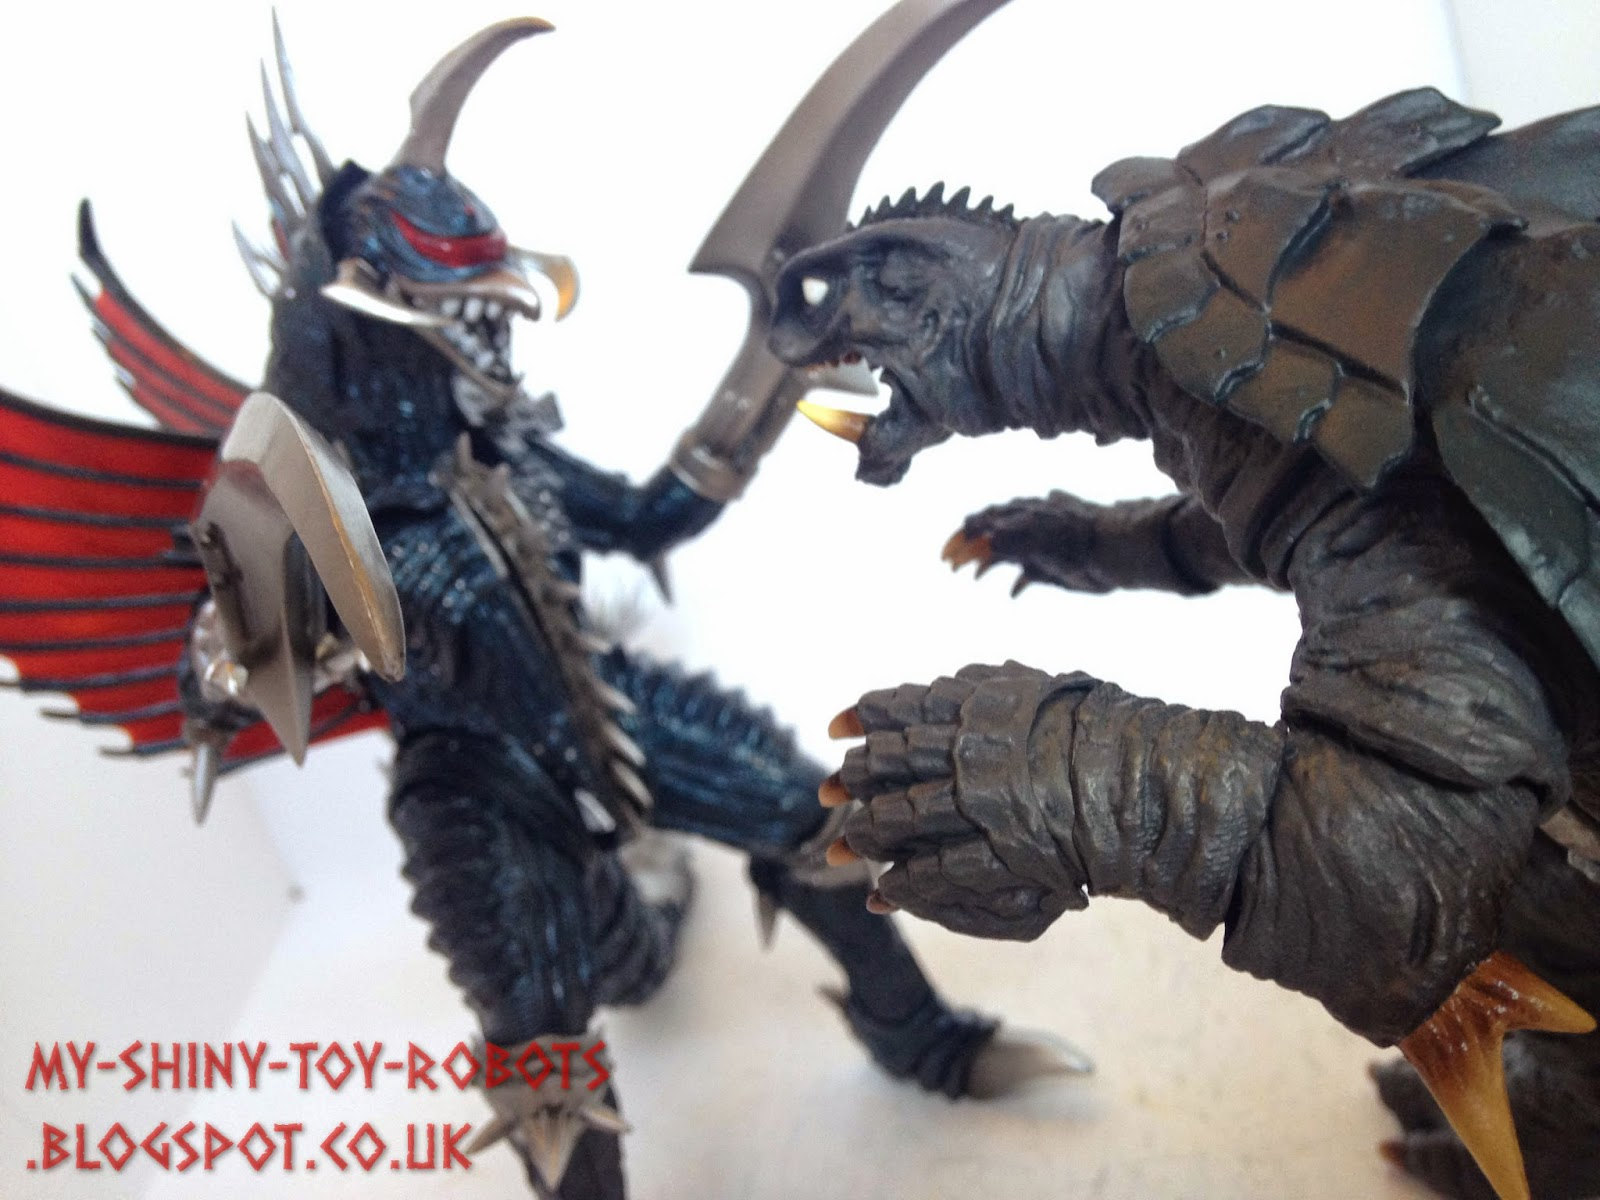 Gamera vs Gigan